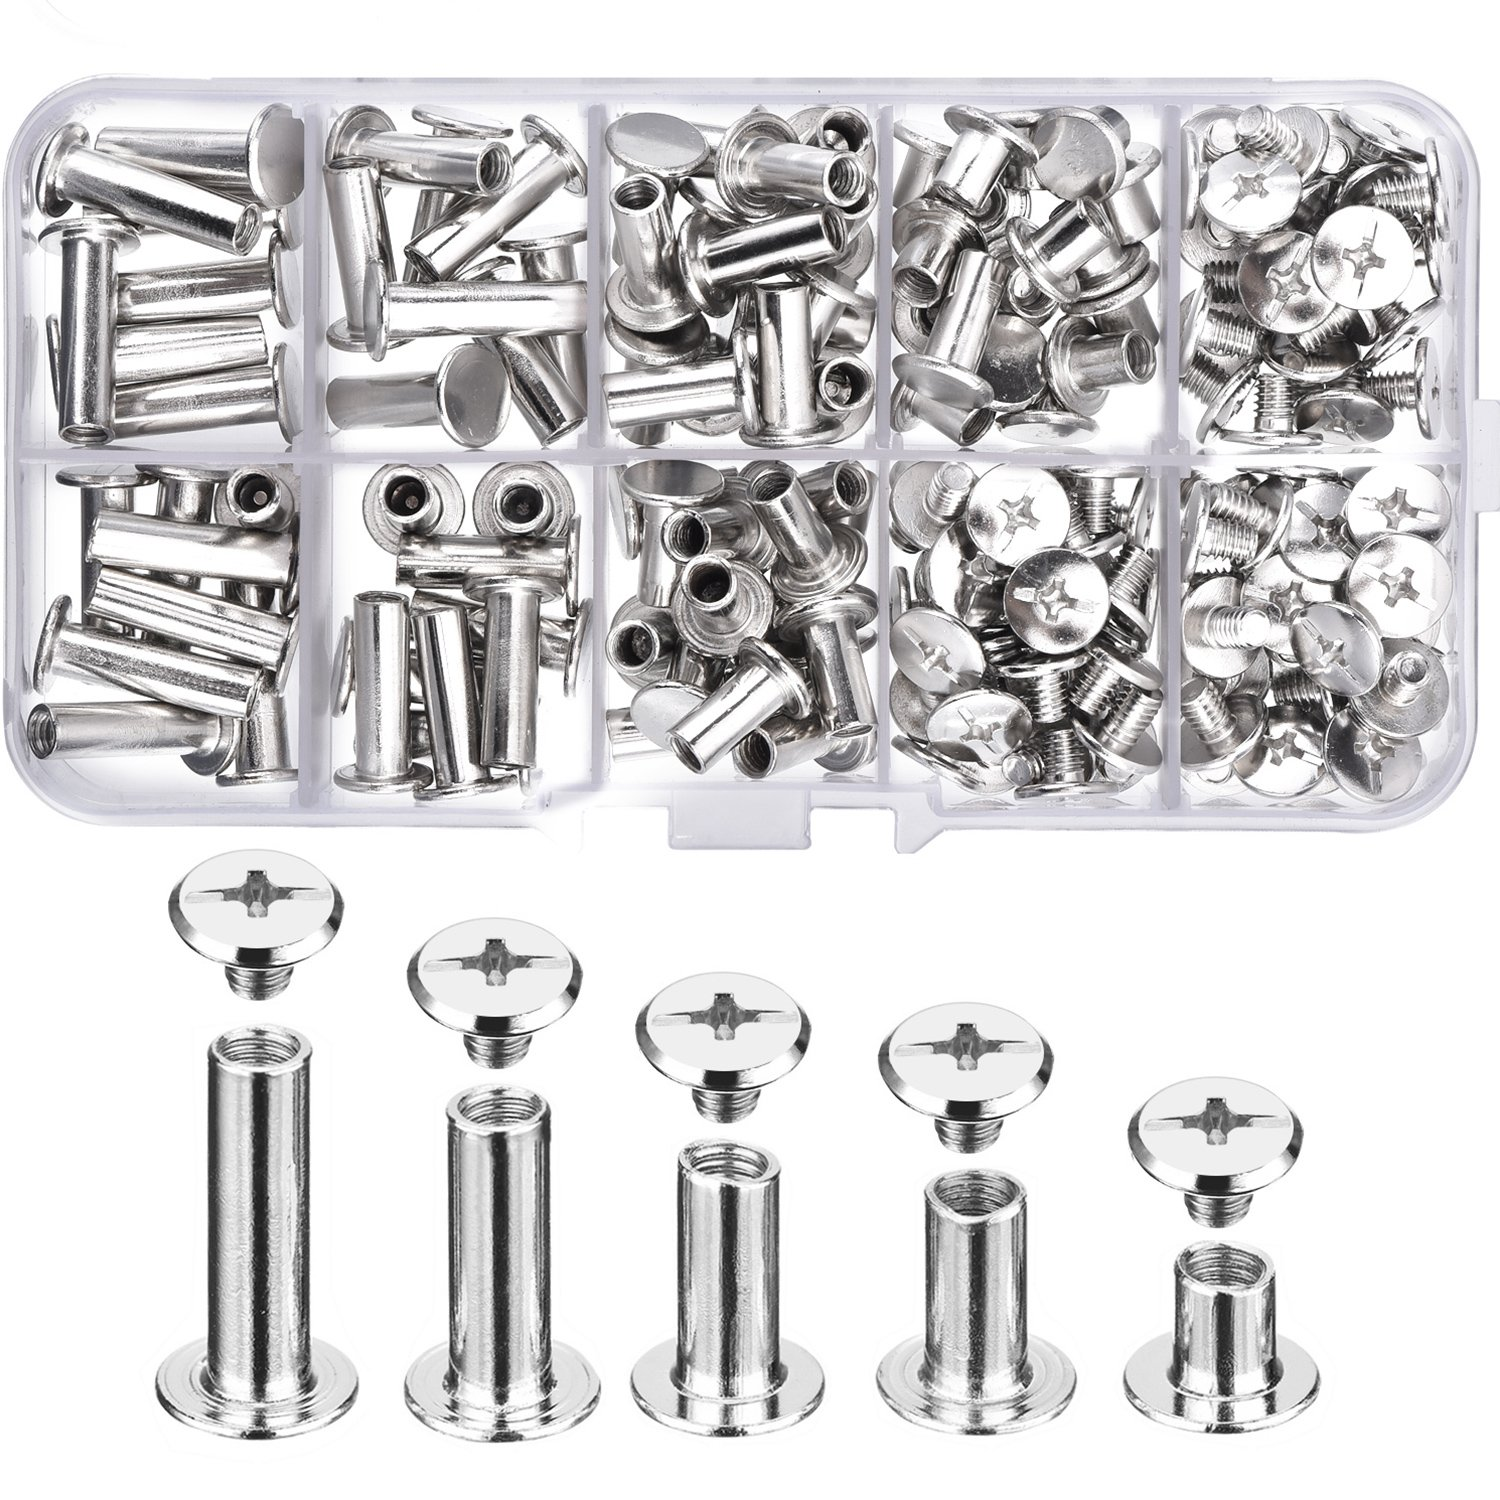 Pangda 80 Set Chicago Binding Screws Assorted Kit 5 Sizes Metal Round Cross Head Stud Screw Posts Nail Rivet Chicago Button for DIY Leather Decoration Bookbinding 4336862334